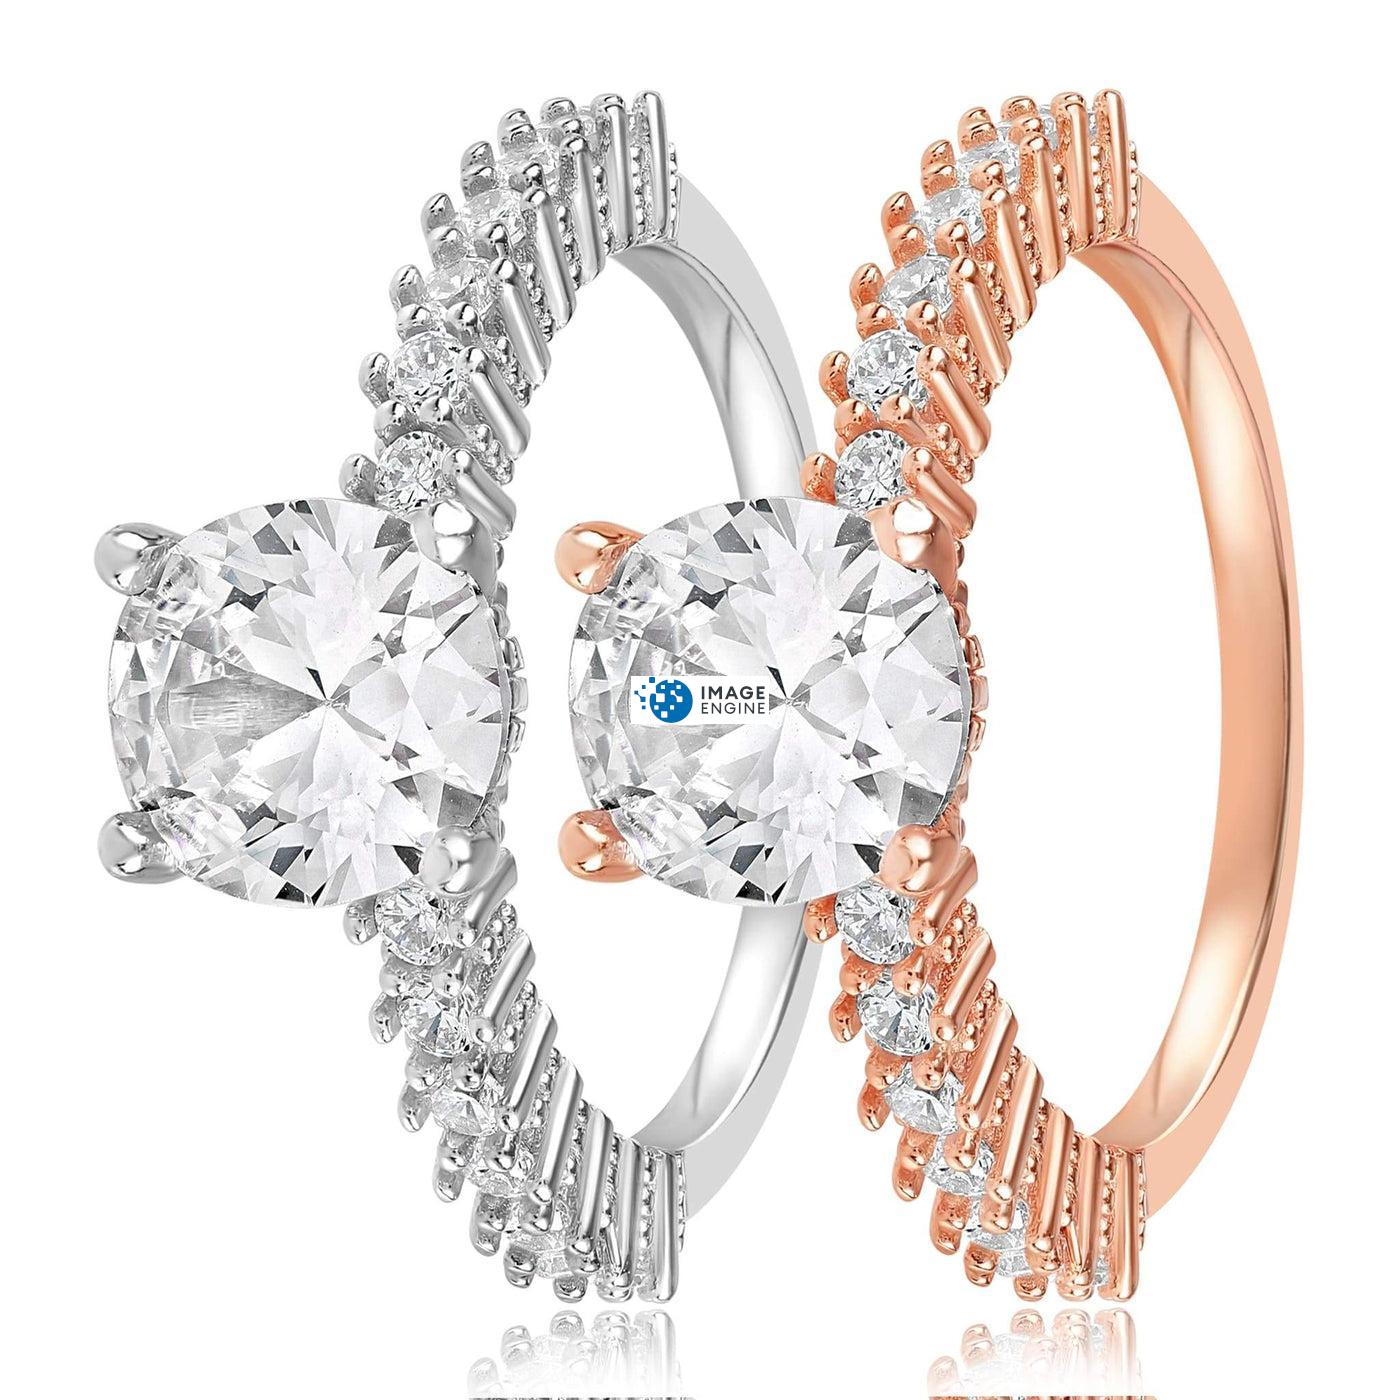 Cara Zirconia Ring - Side by Side - 925 Sterling Silver and 18K Rose Gold Vermeil